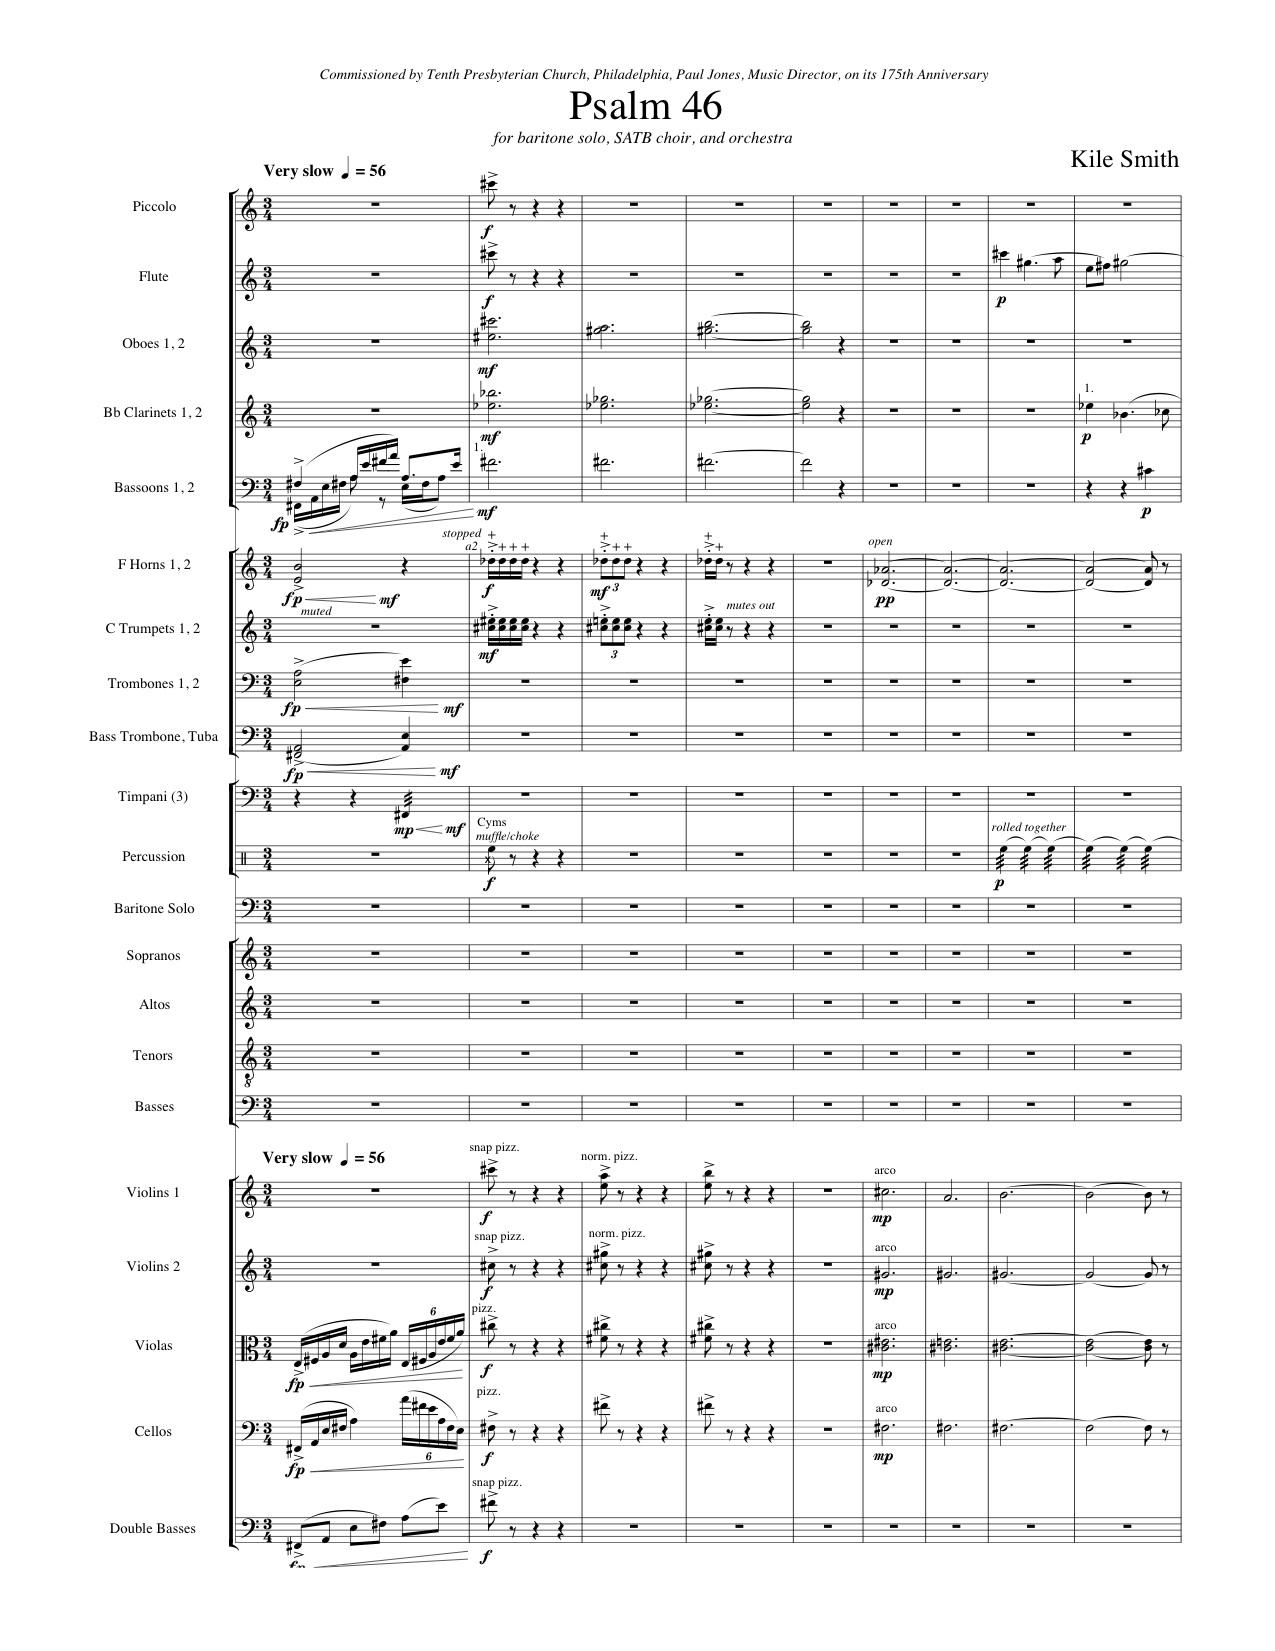 Choral and vocal music kile smith composer first page piano sc baritone 2222 2231 timp1perc satb str 14 hexwebz Choice Image